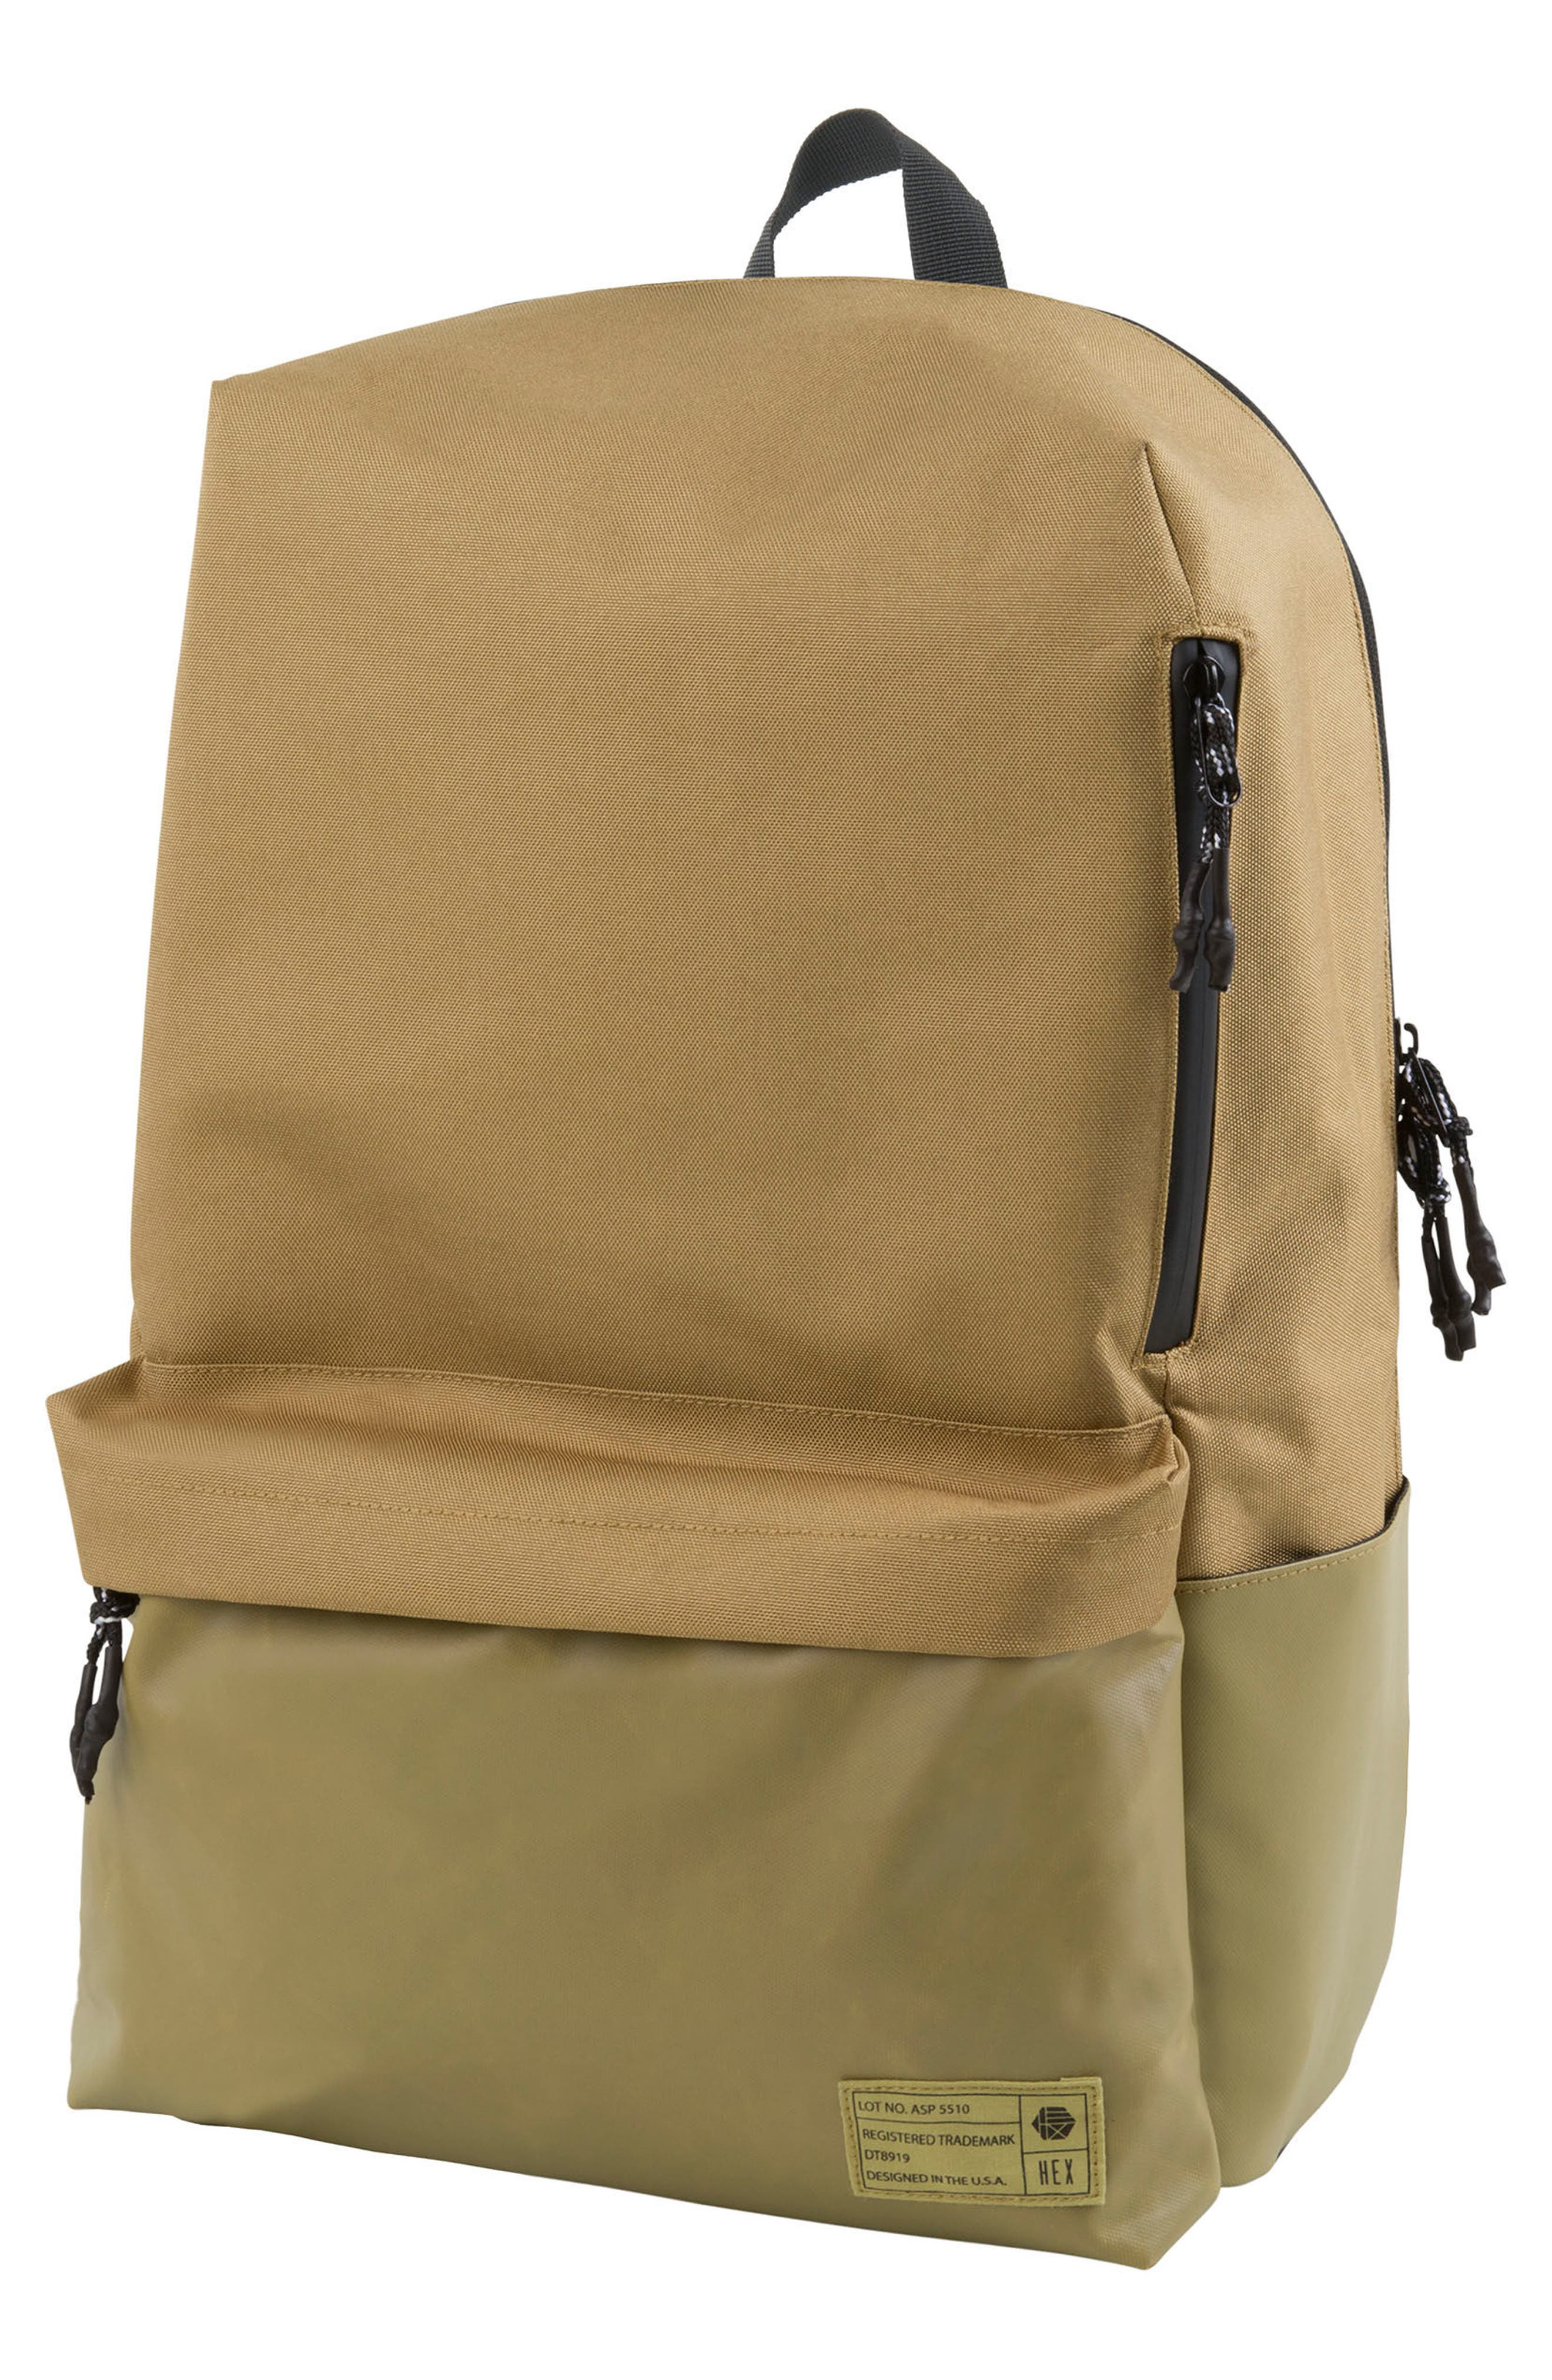 Exile Backpack,                             Main thumbnail 1, color,                             Tan